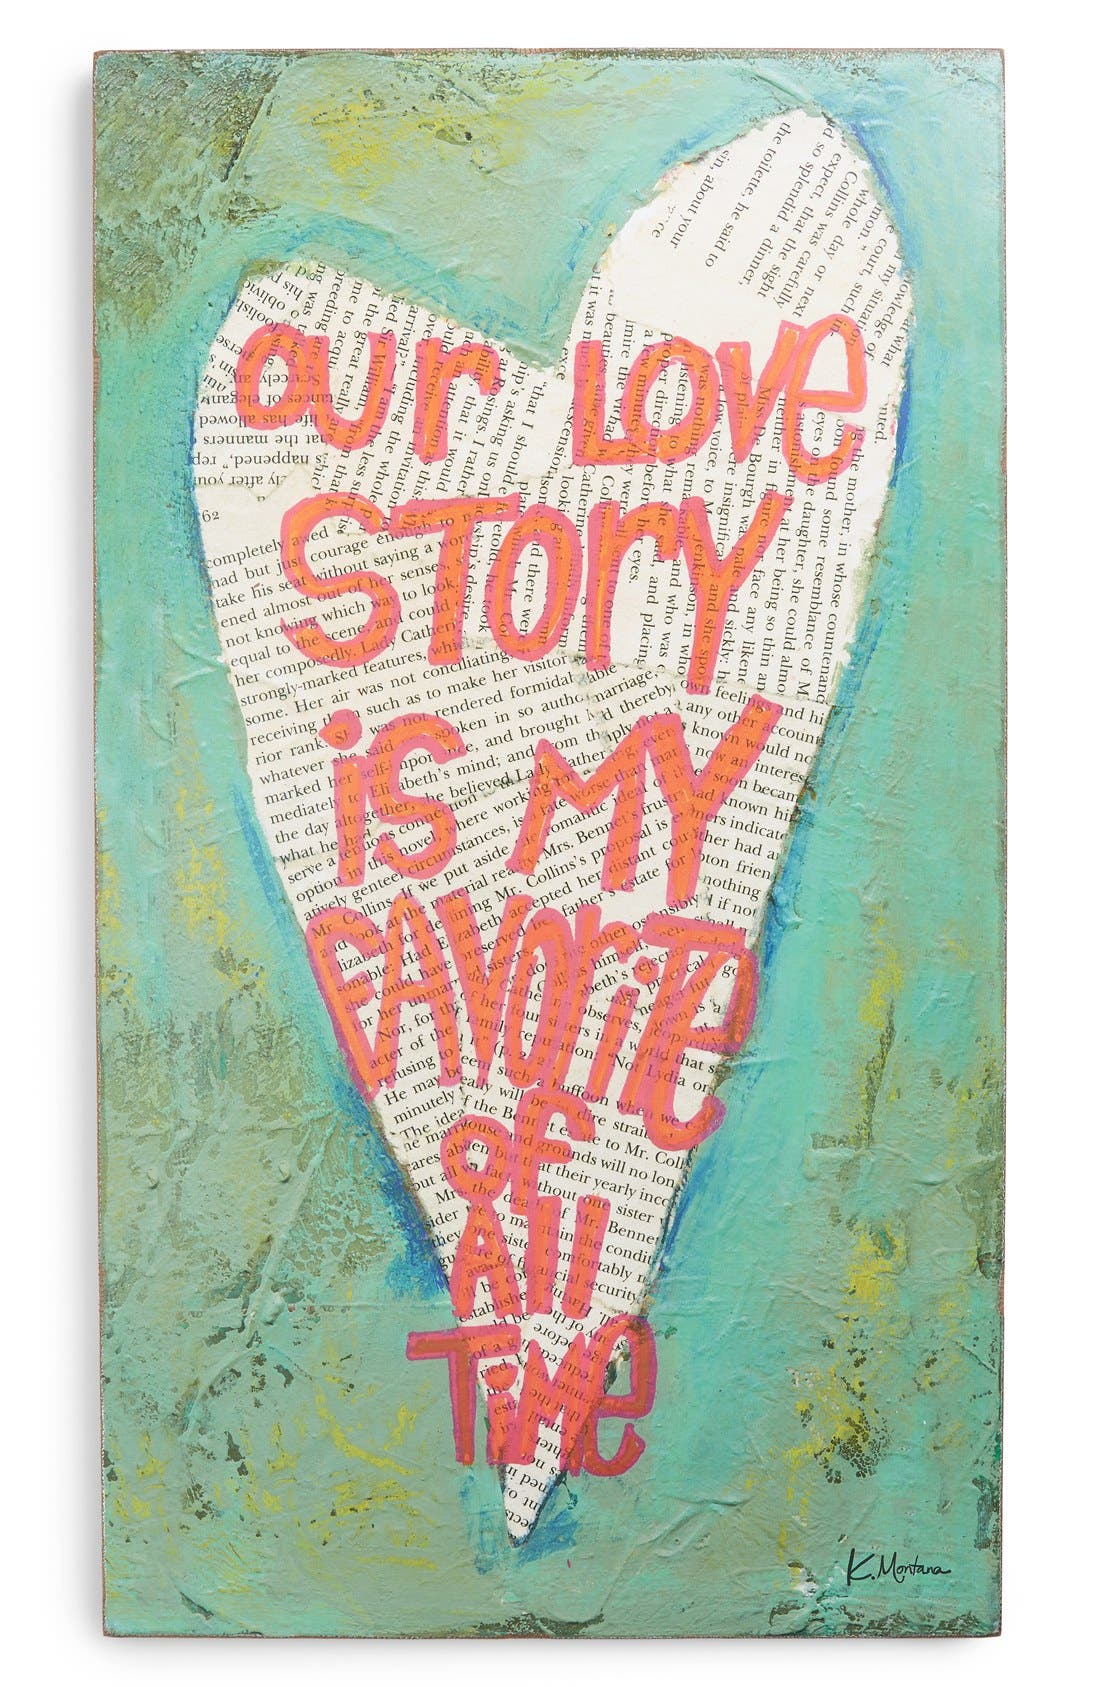 Alternate Image 1 Selected - Creative Co-Op 'Our Love Story' Wall Plaque